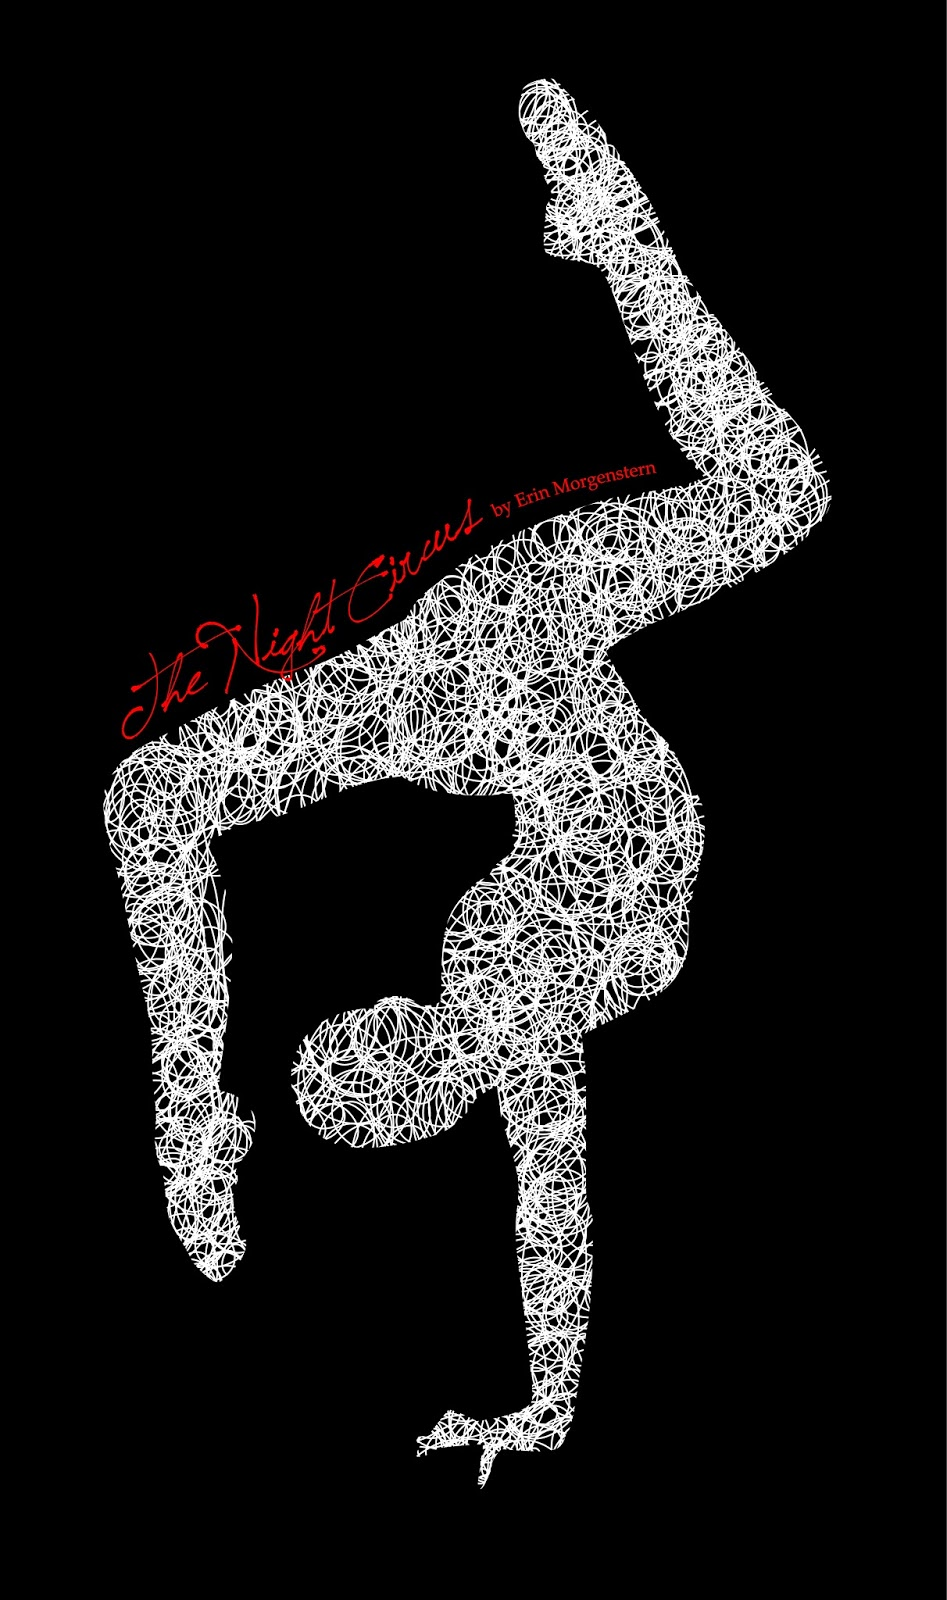 the-night-circus-book-cover, erin-morganstern-nanowrimo, black-and-white-and-red, contortionist-graphic